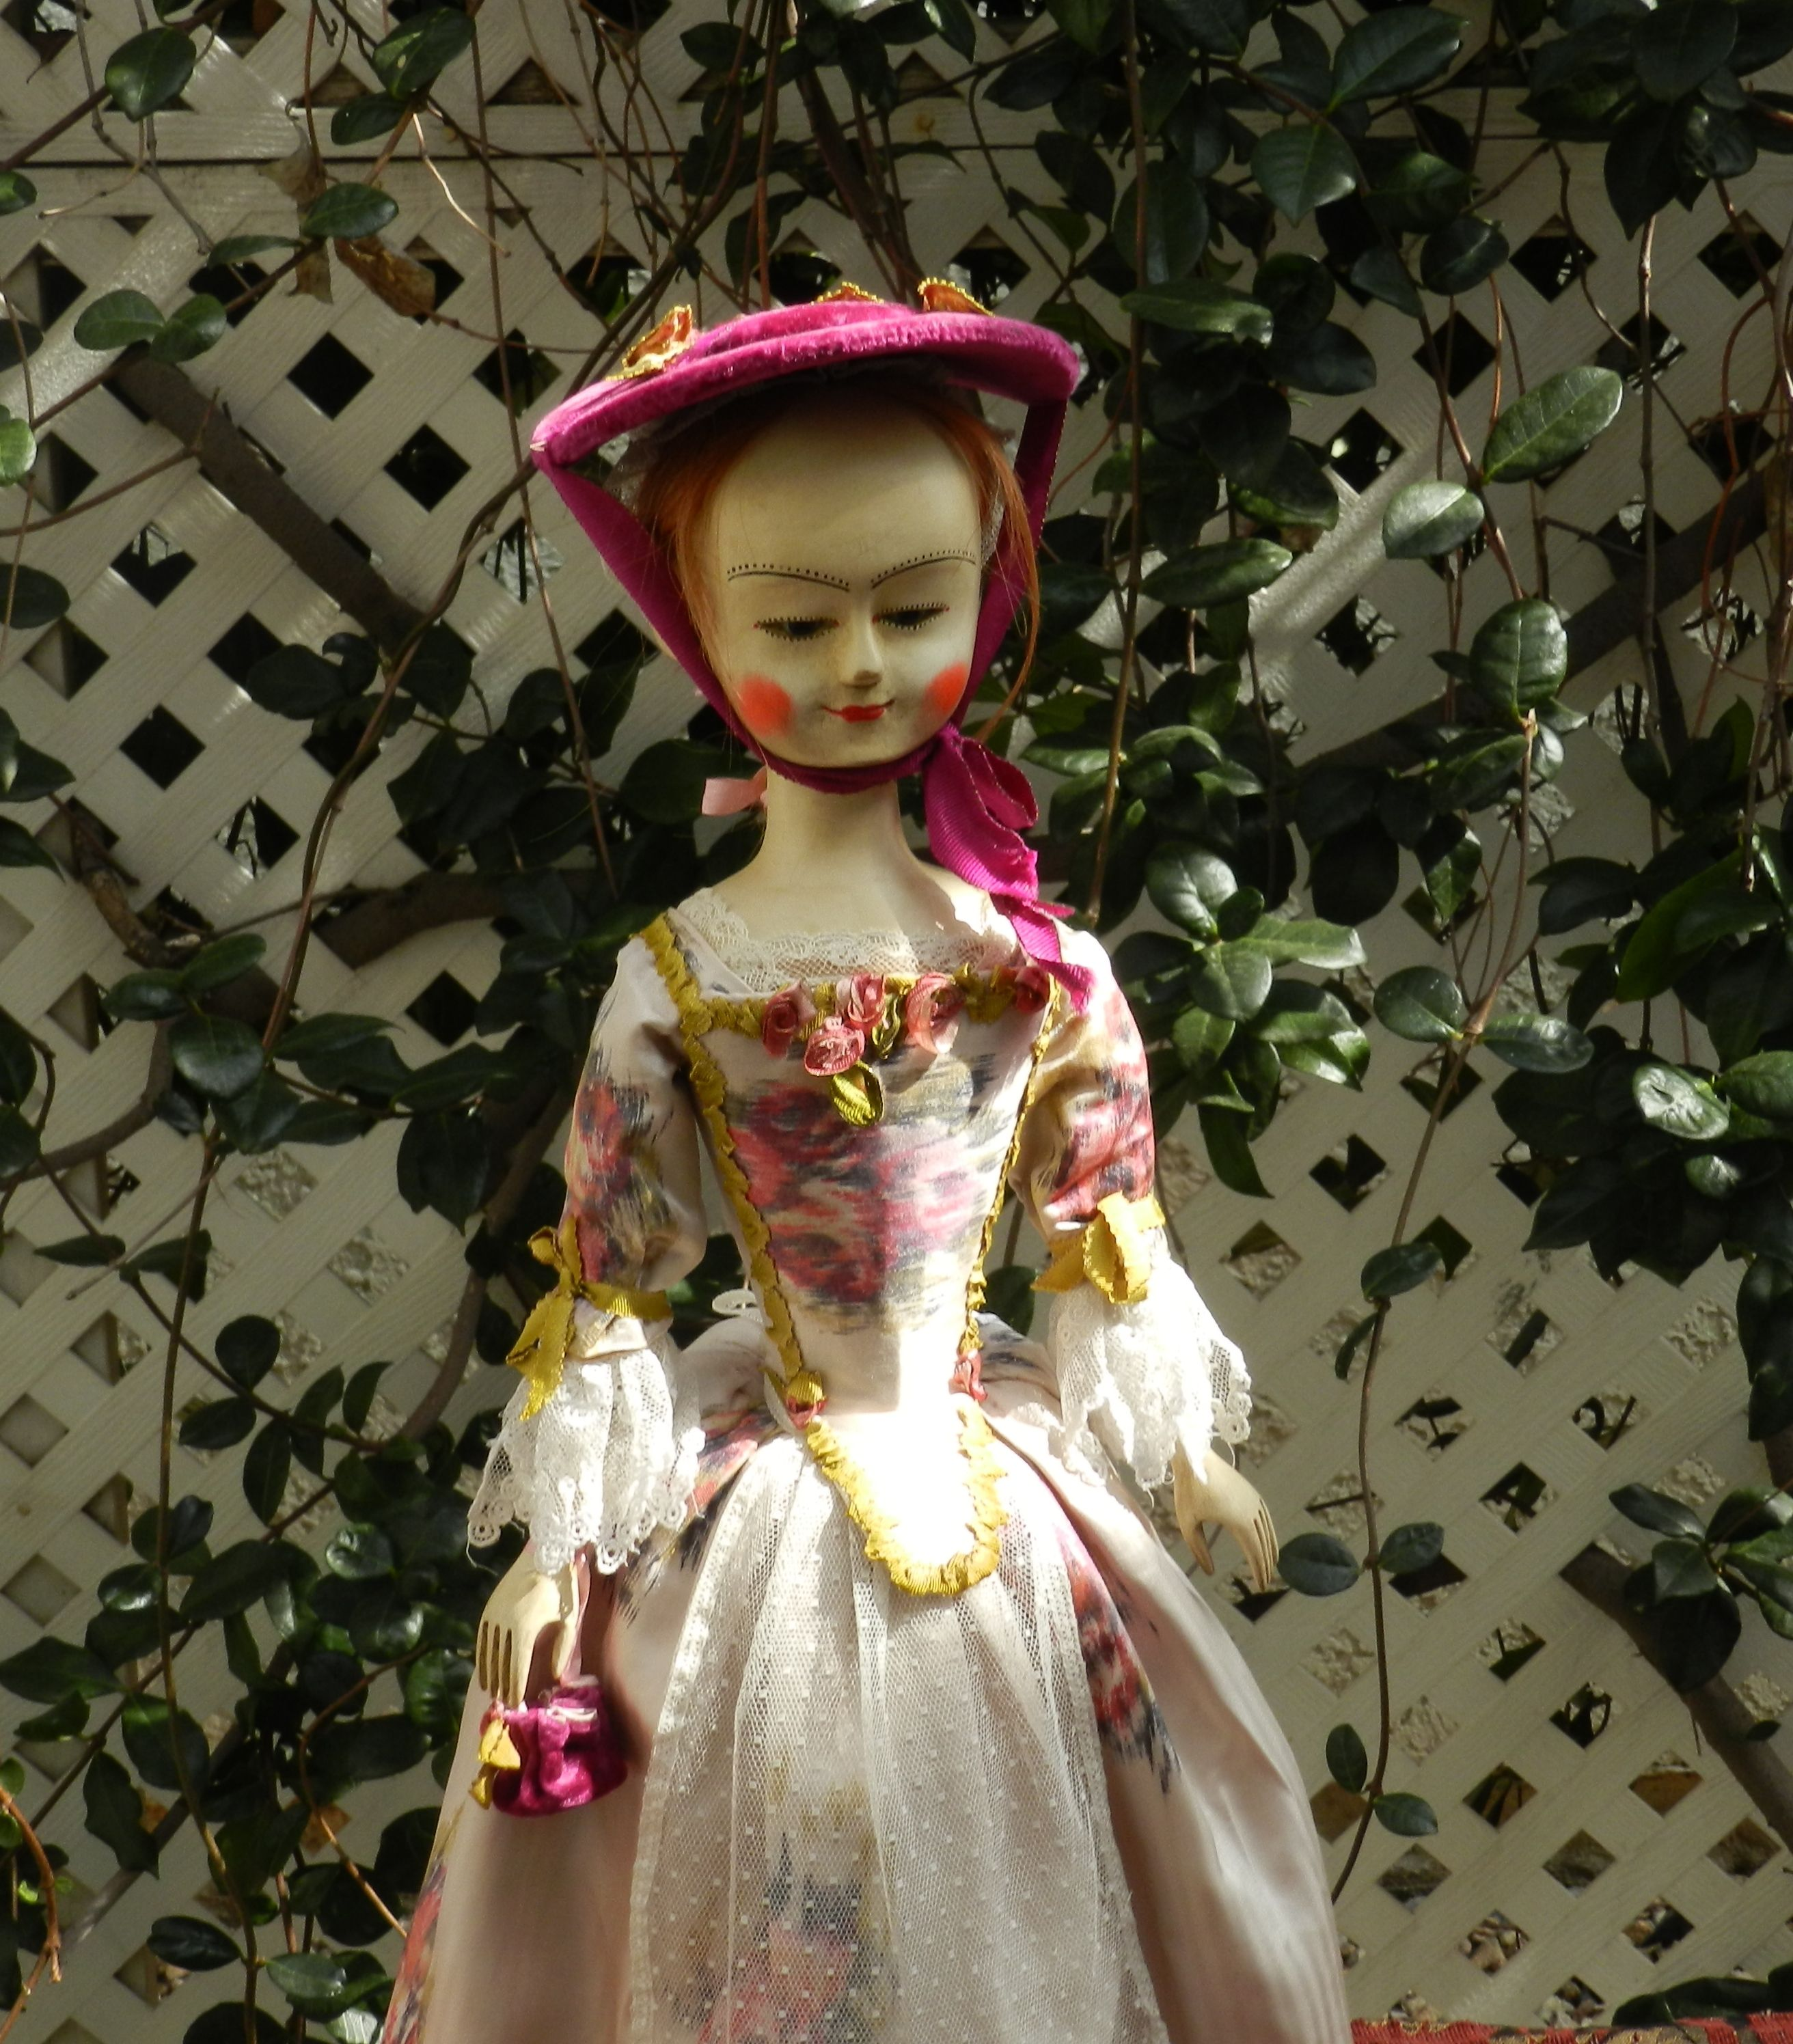 Wooden doll Queen Anne style by Alena Sinel